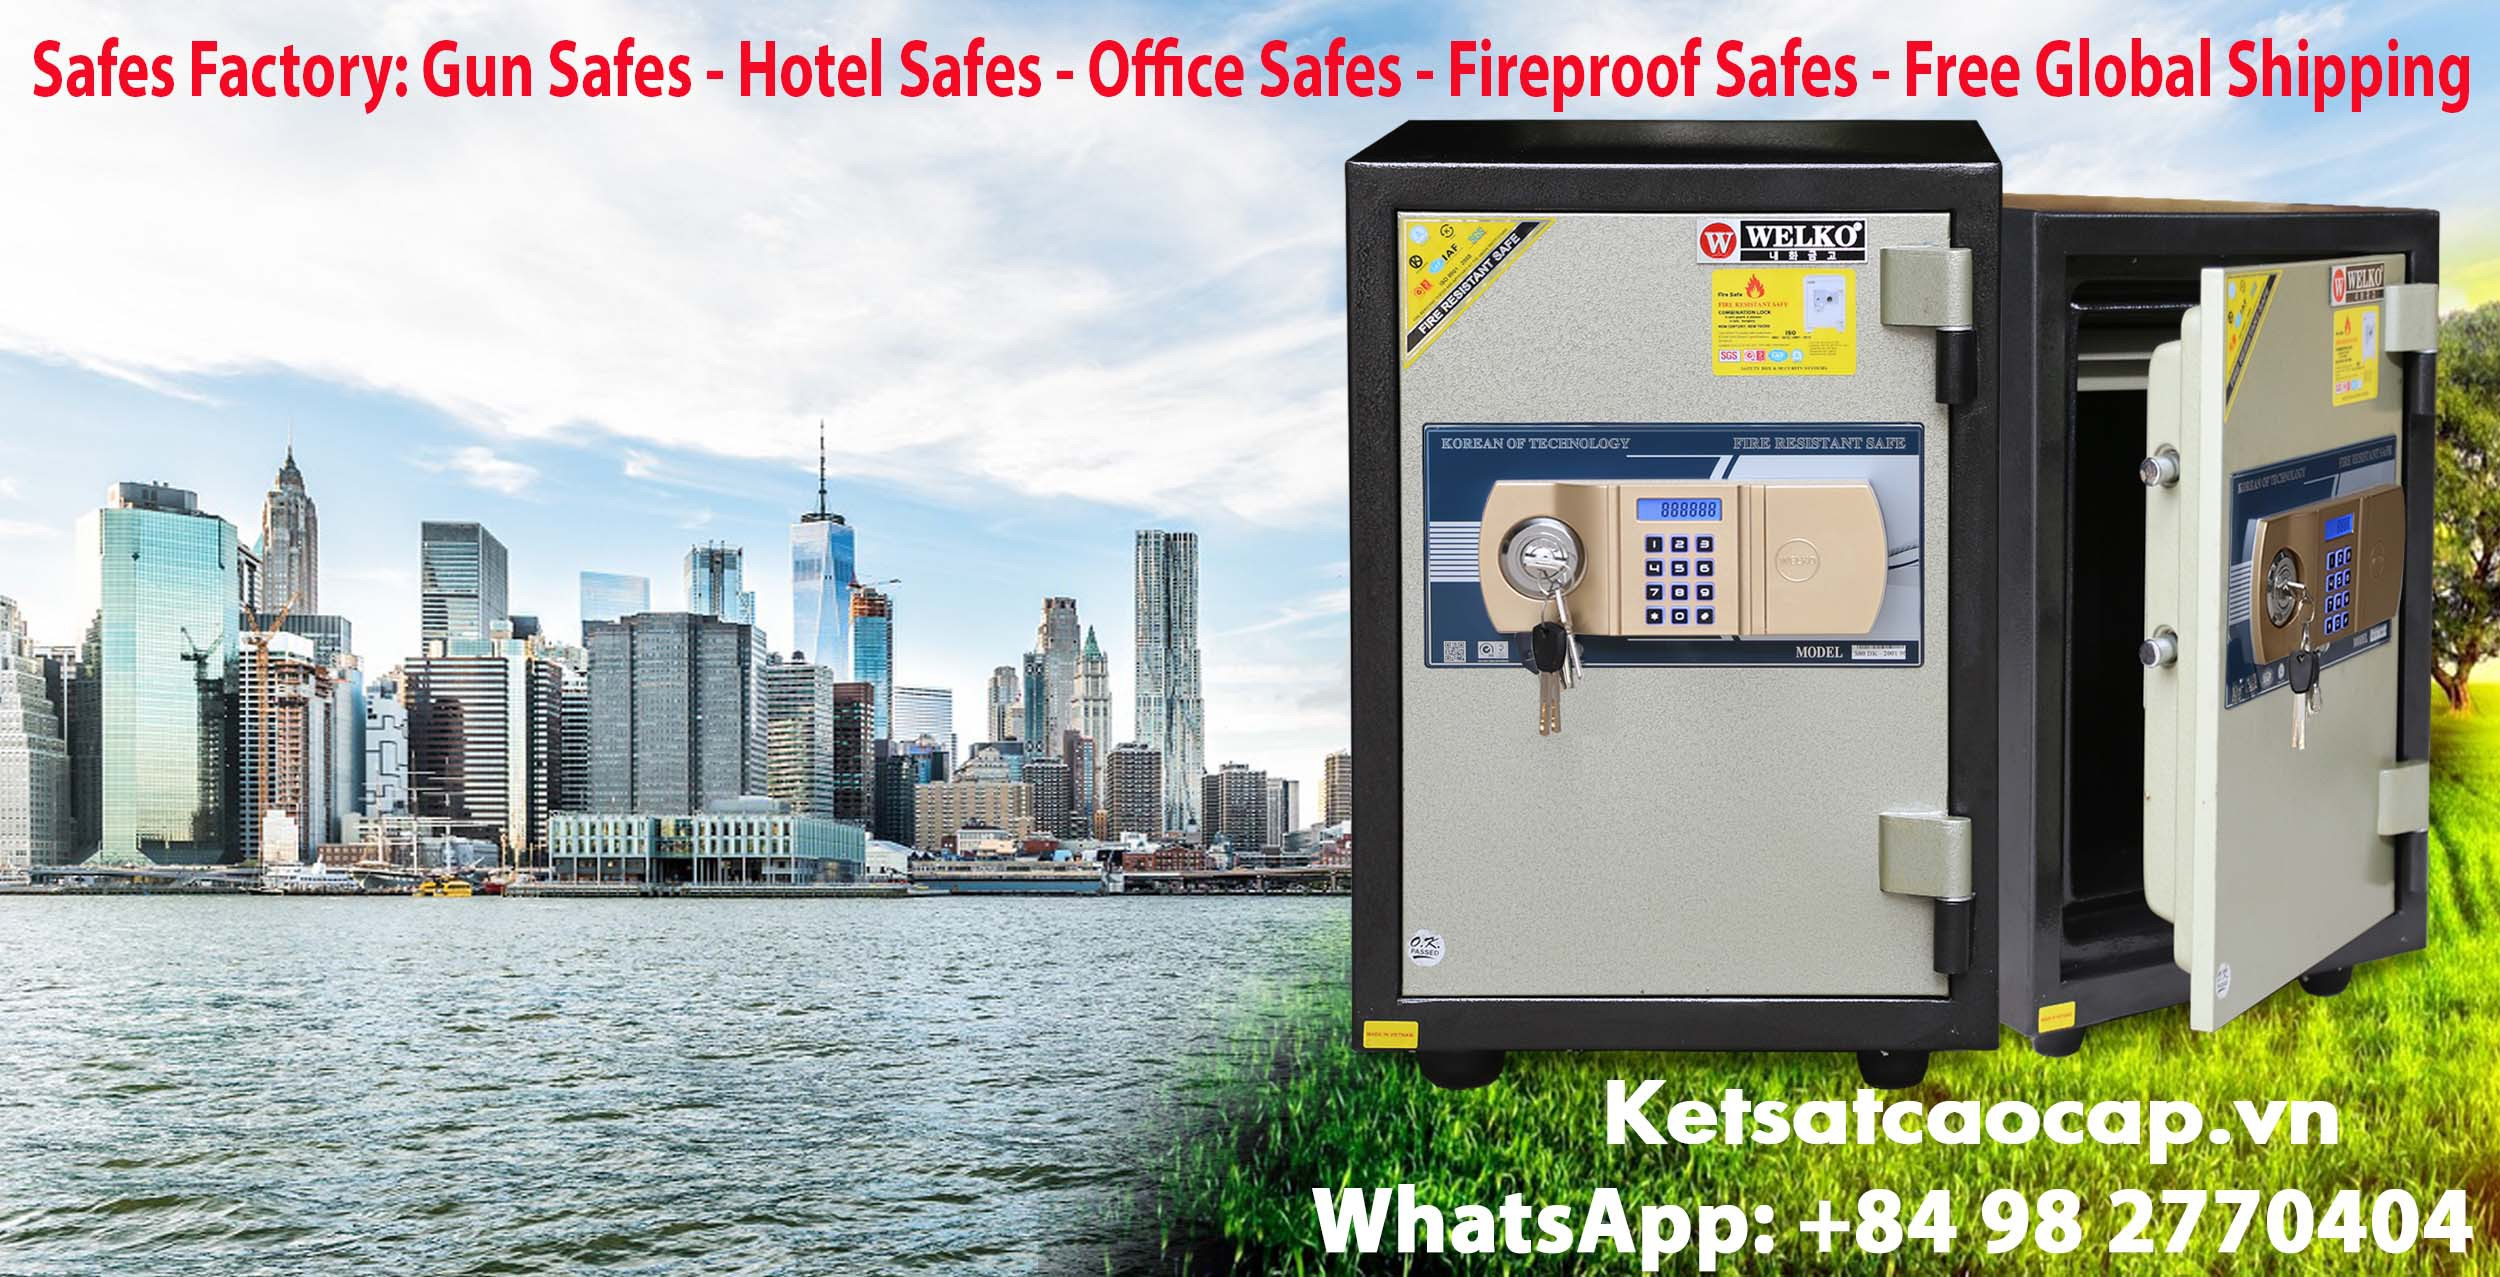 BURGLARY FIRE SAFES